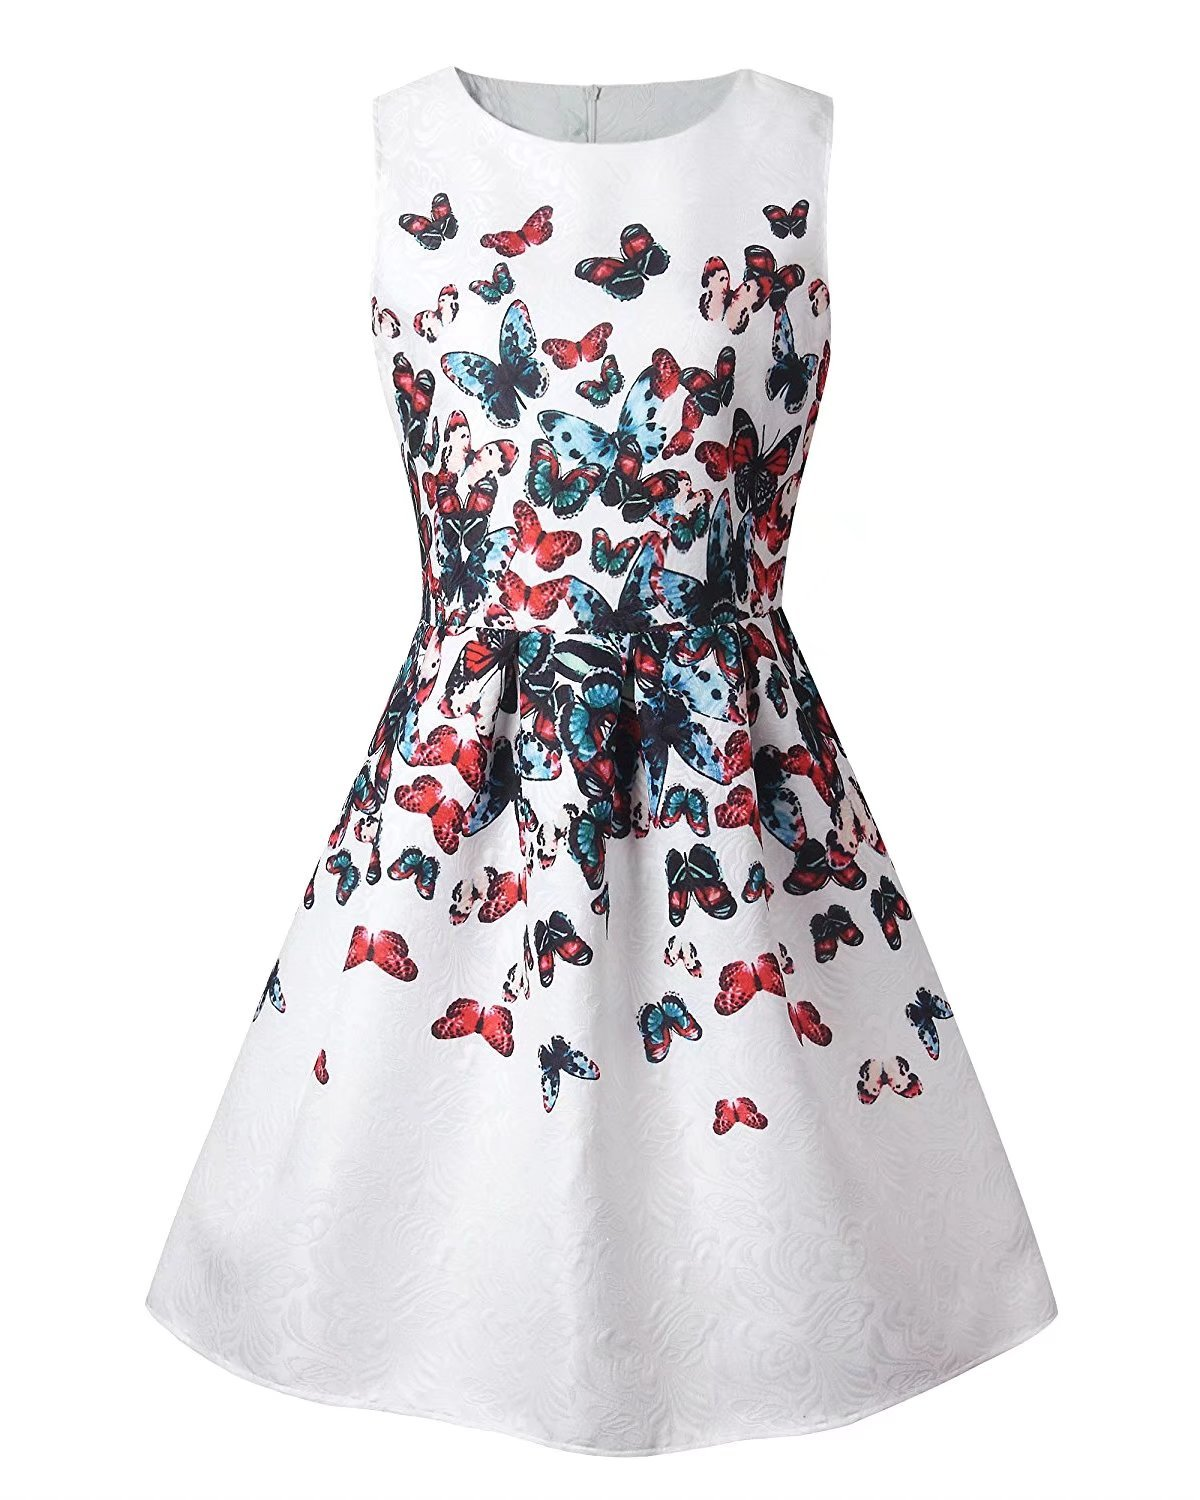 Girl Sleeveless Floral Butterfly Print Cute Tank Mini A Line Skater Dress, 9-10 Years / Tag 150